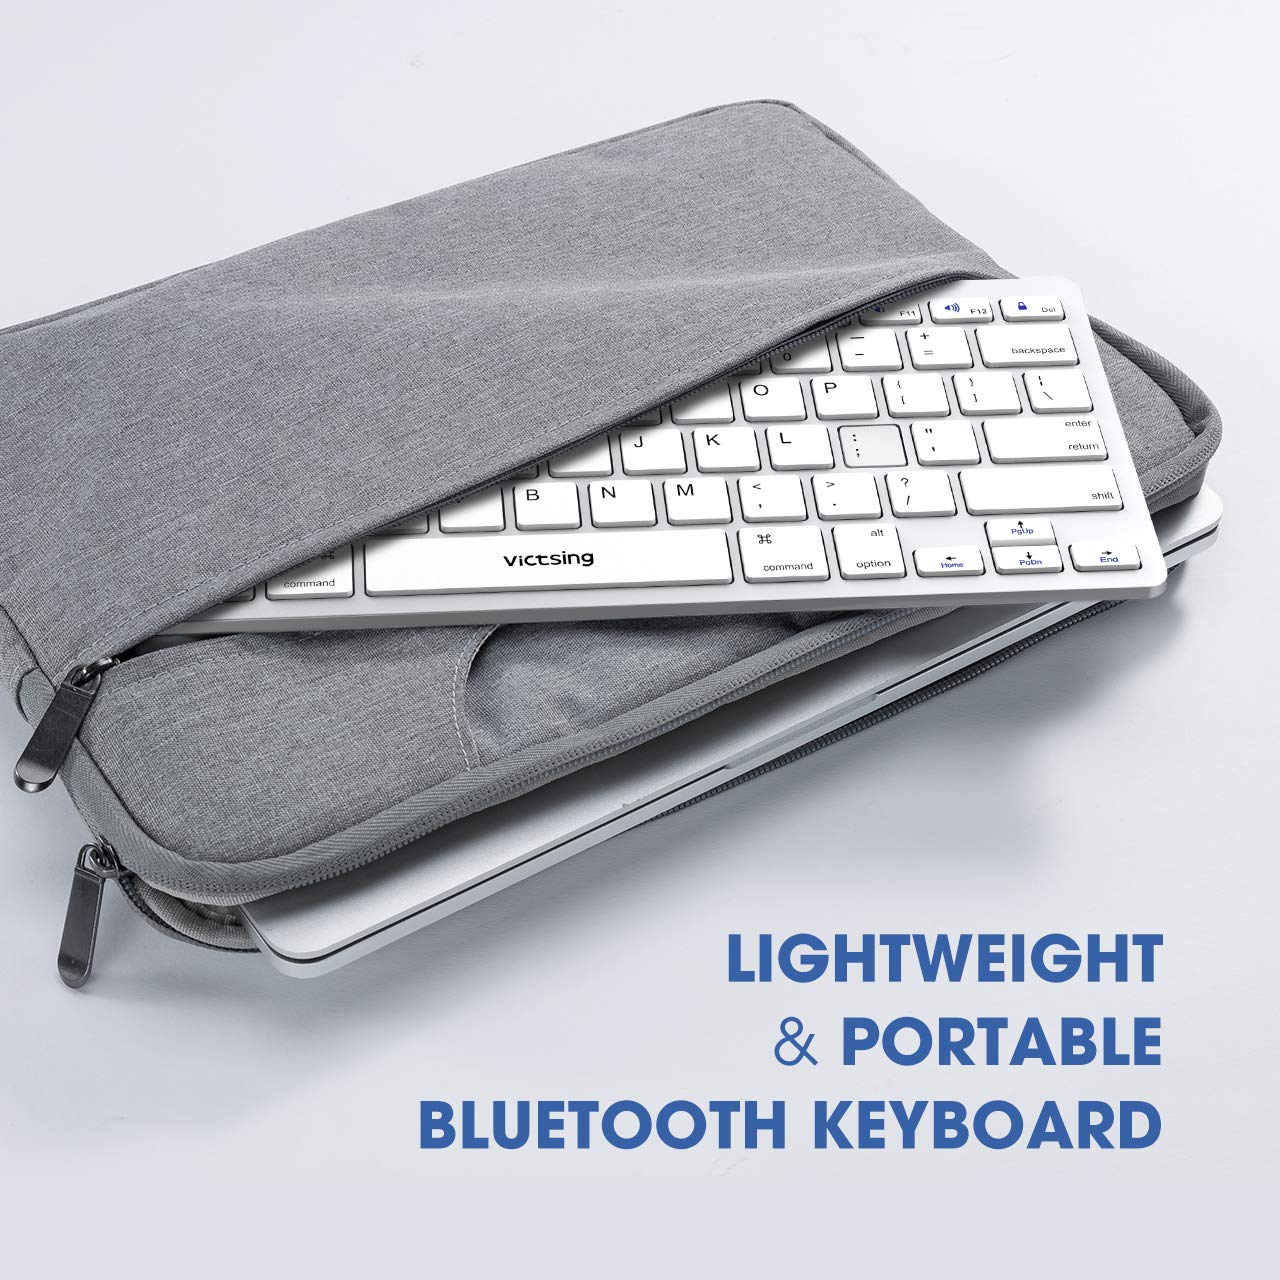 Silver Laptop iPhone, iPad Wireless Keyboard for iOS Smartphone and Other Bluetooth Enabled Devices VicTsing Ultra-Slim Portable Bluetooth Keyboard Tablet Mac Computer Windows Android